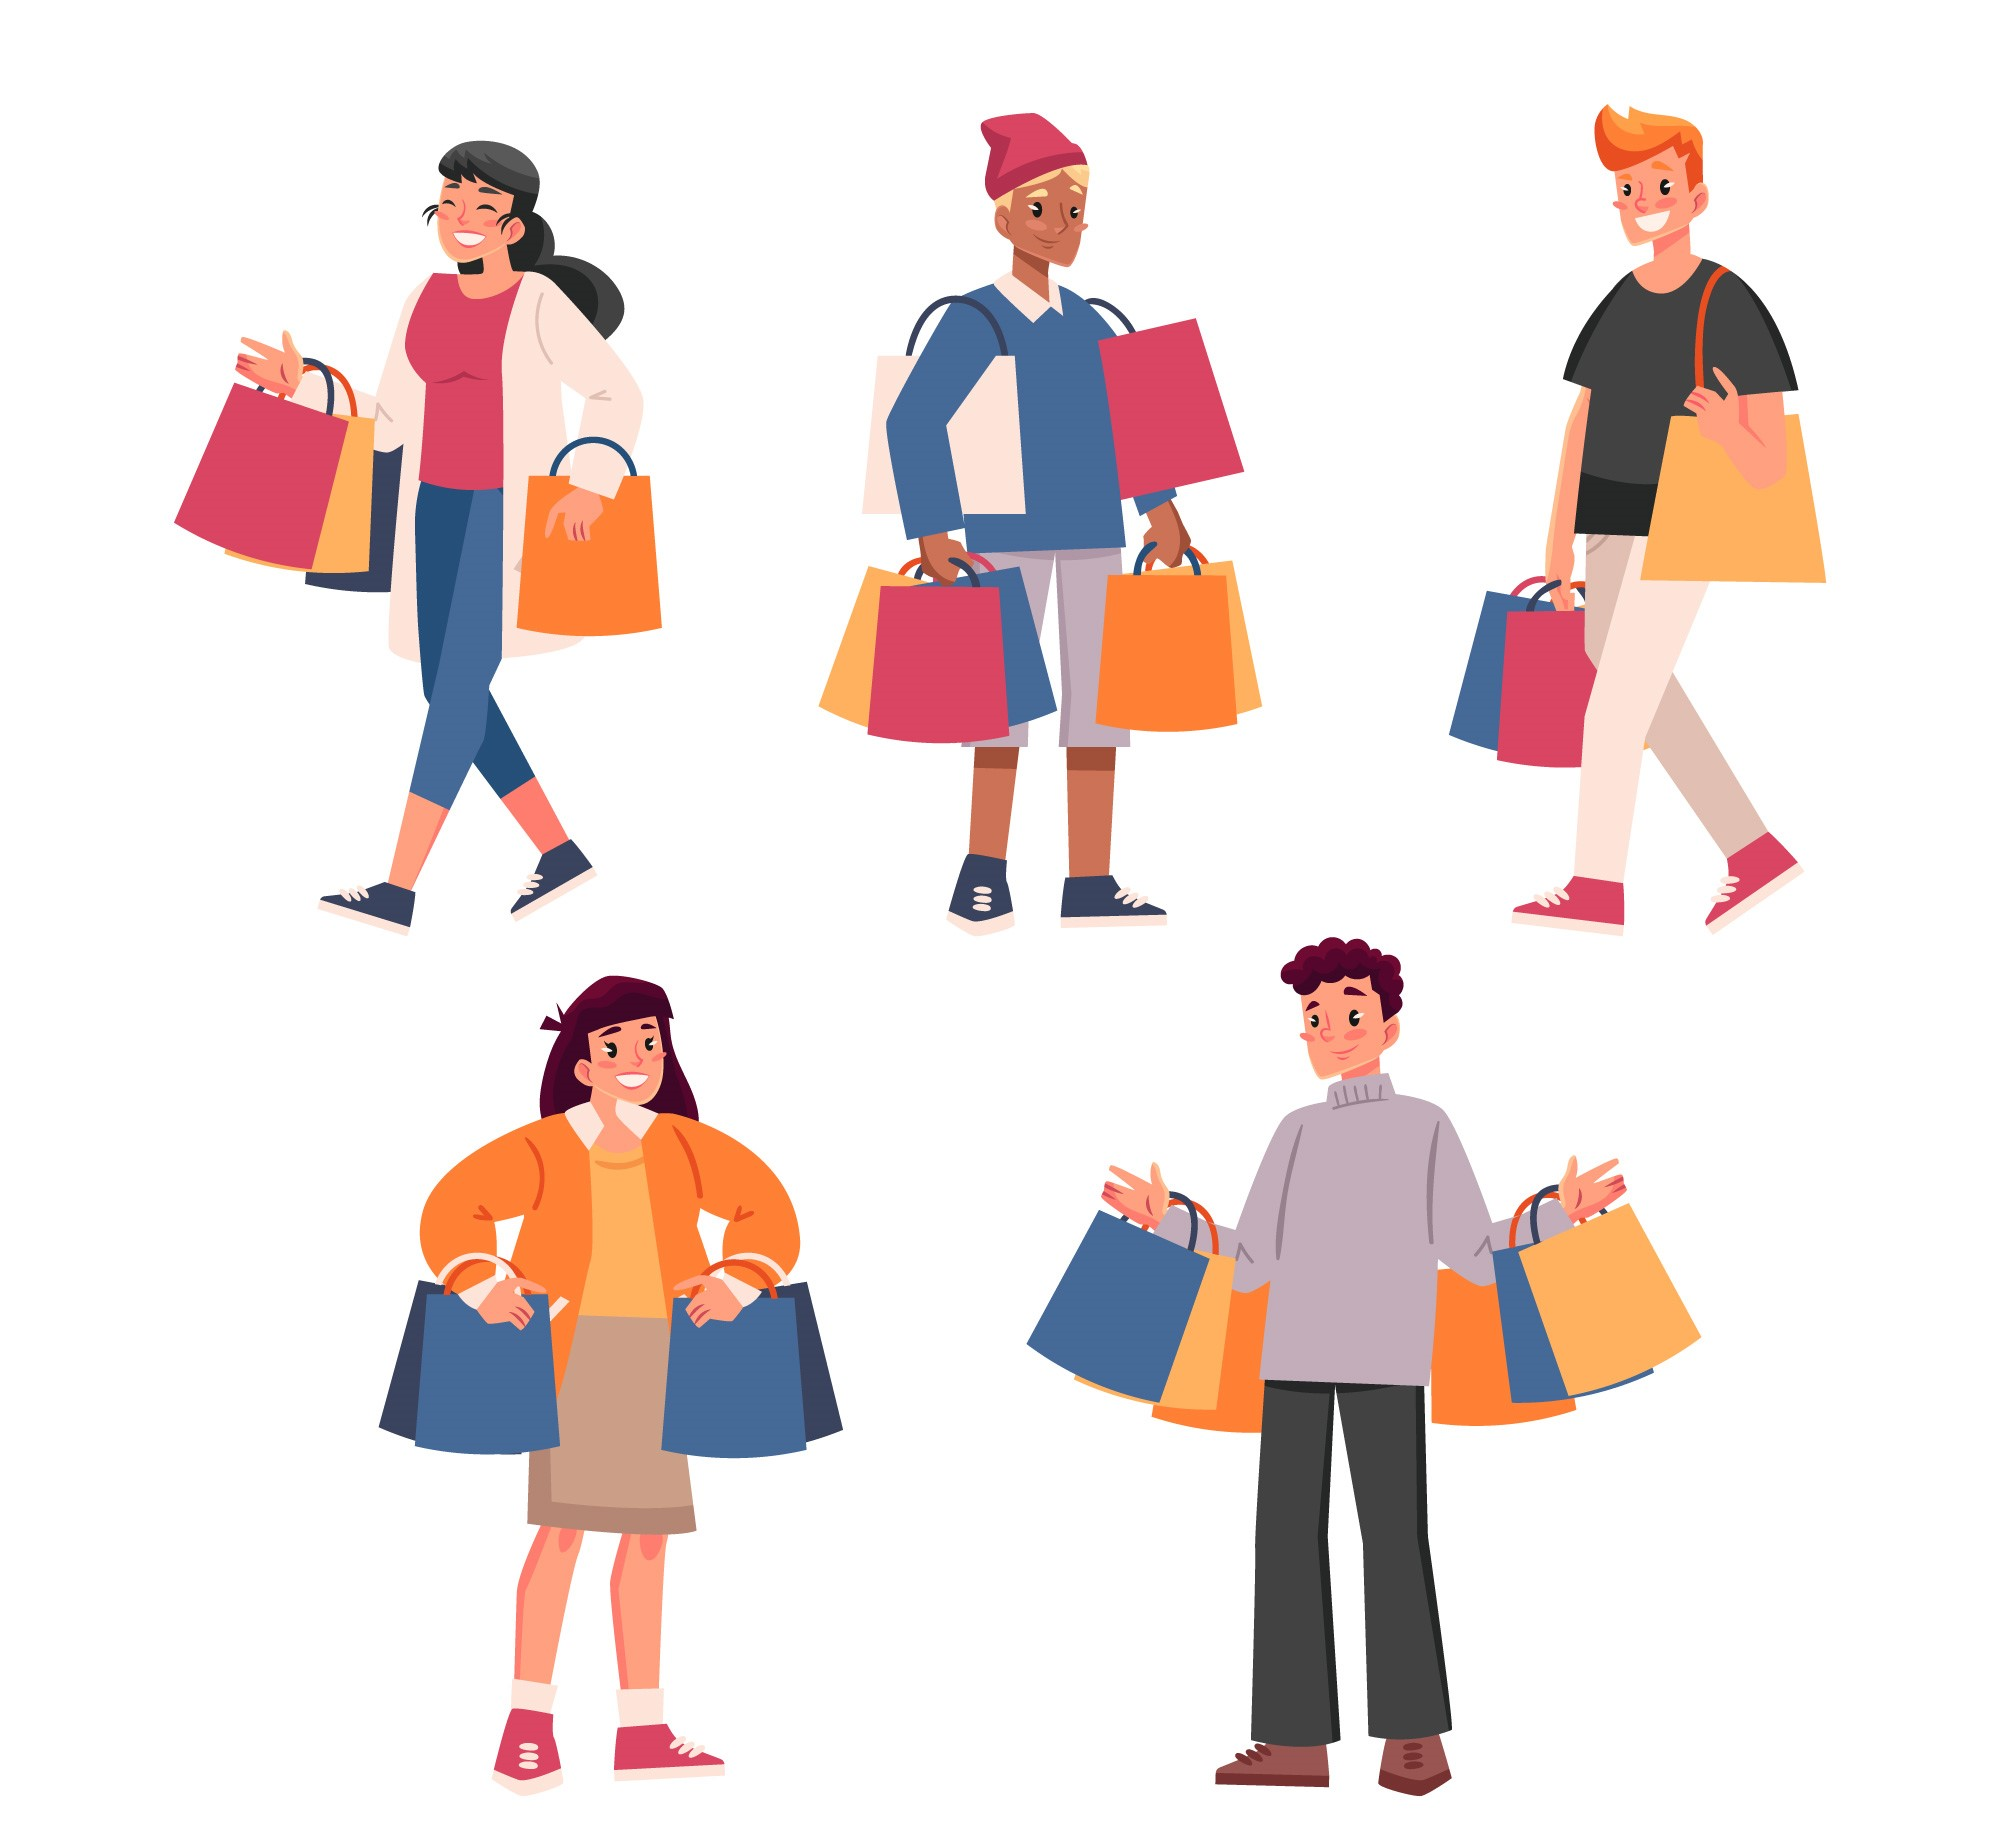 COVID-19 Pandemic: How did shopping behaviour change across the world?